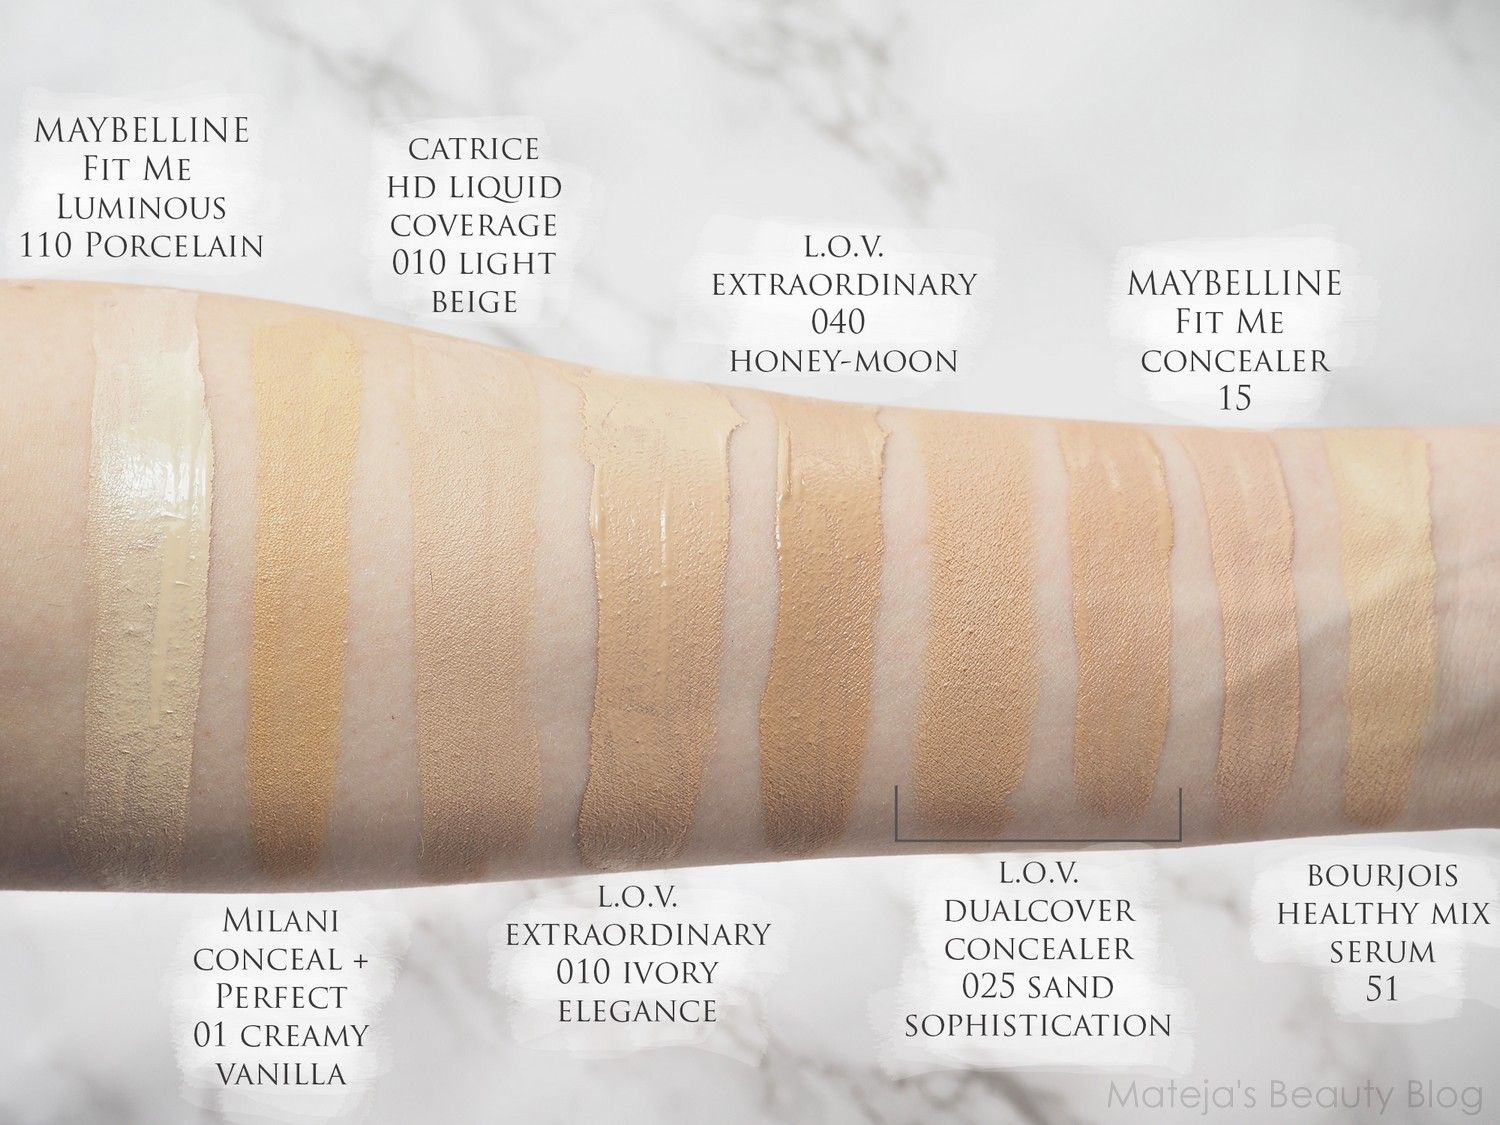 Conceal + Perfect Longwear Concealer by Milani #6